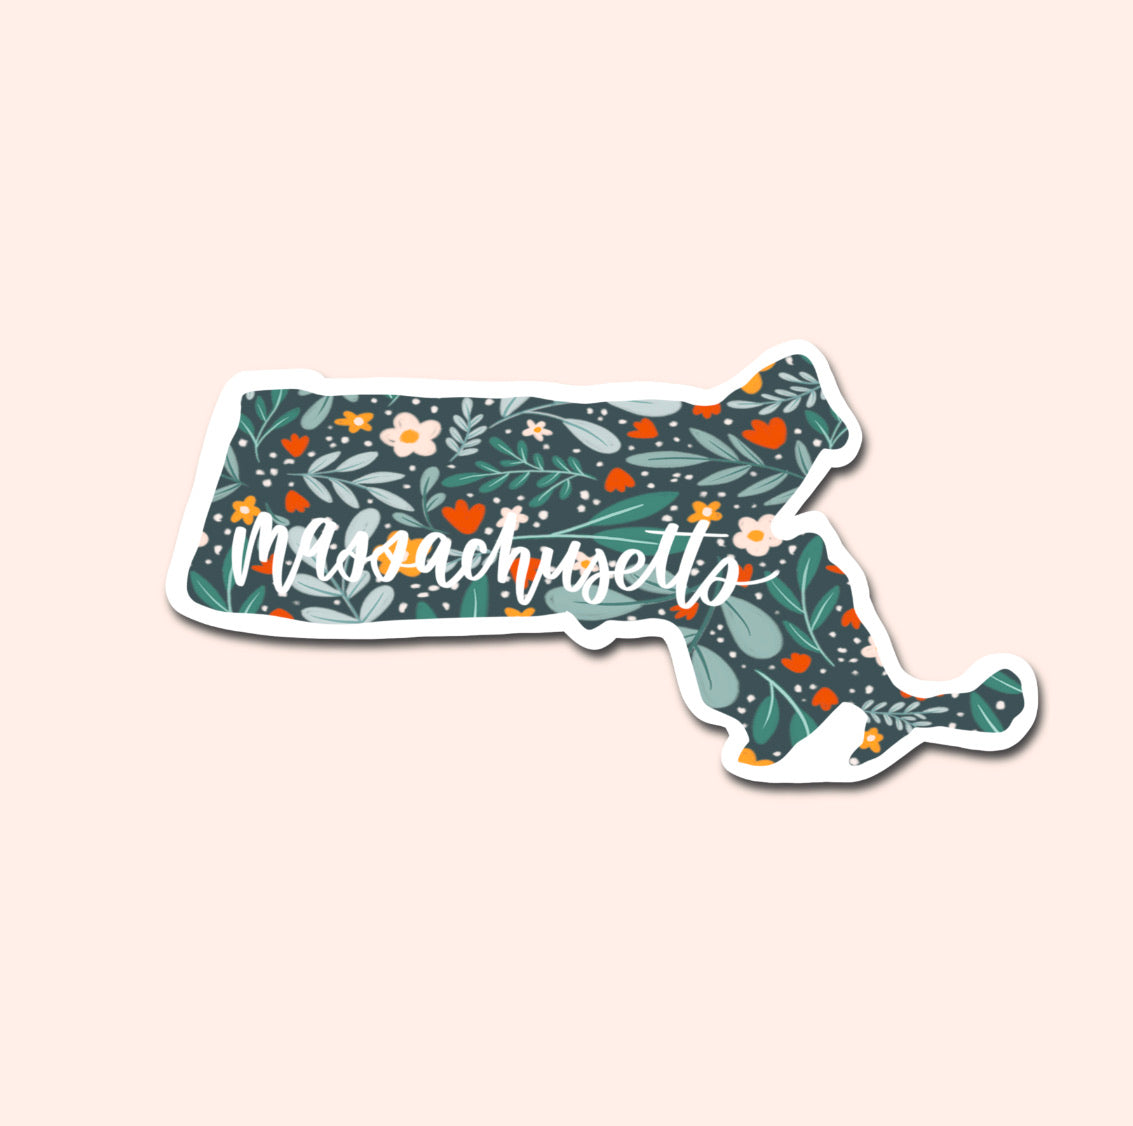 Massachusetts Floral Pattern Sticker